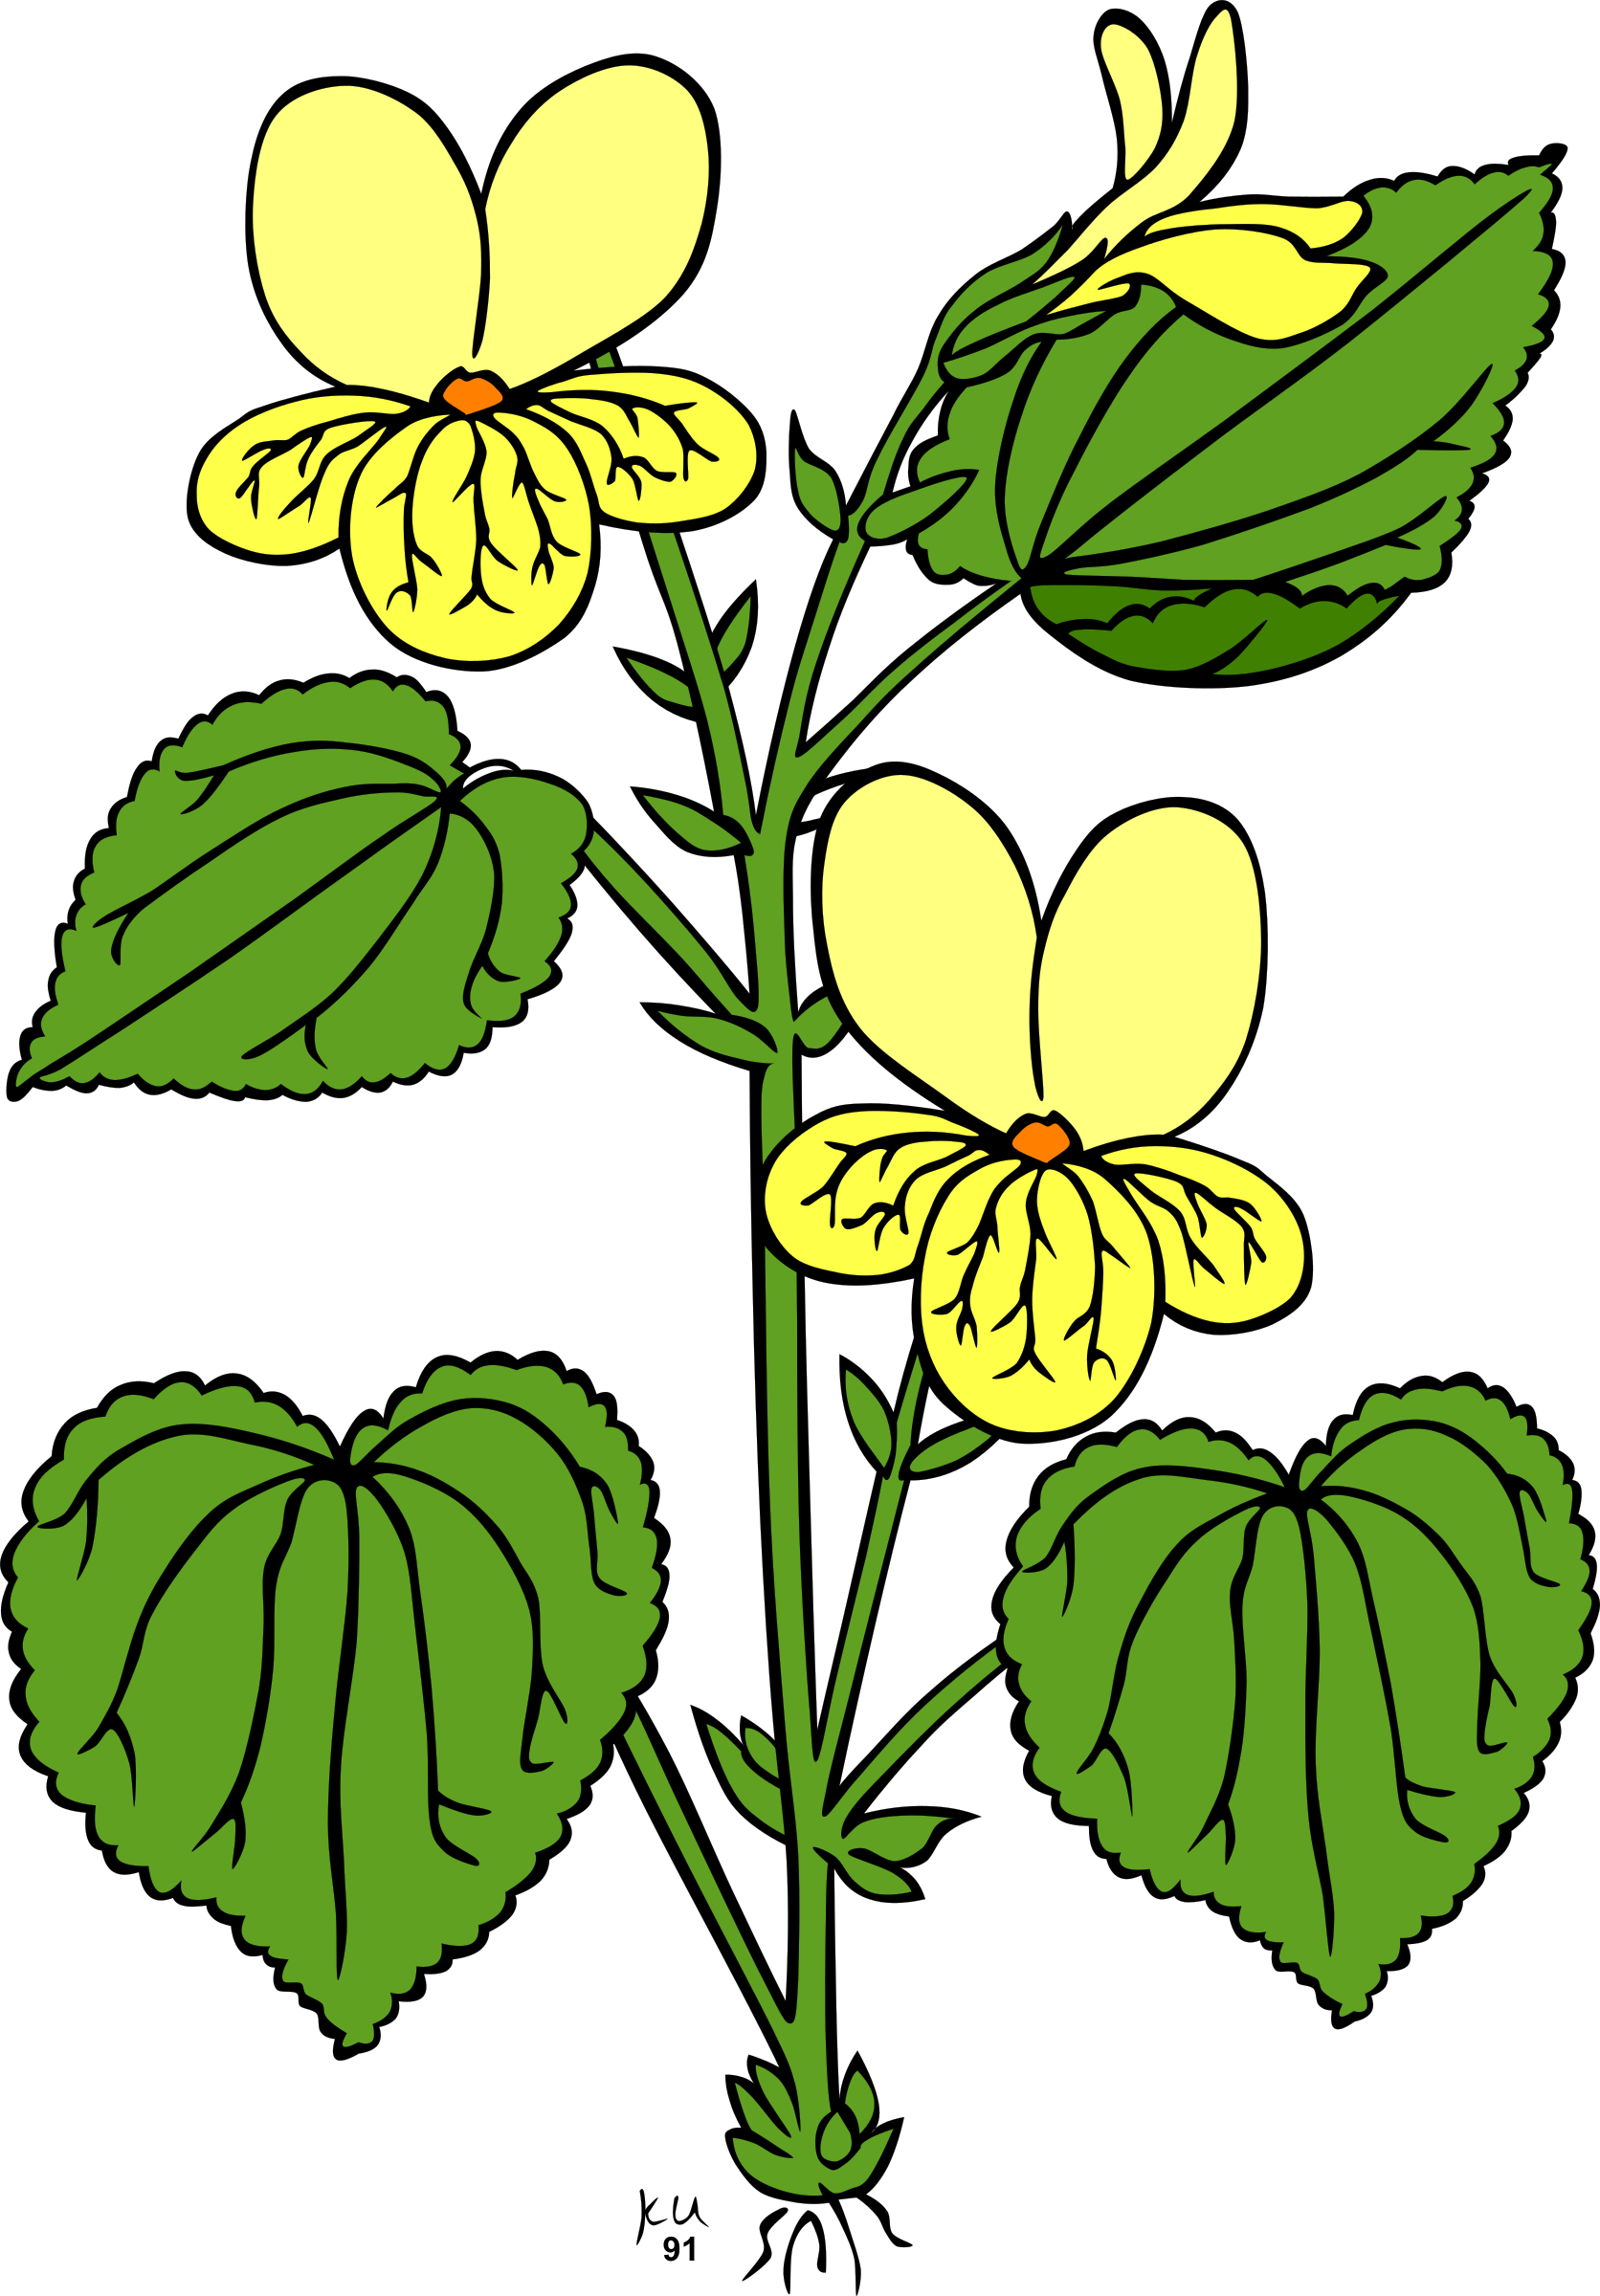 Plants clipart flower plant. Jungle at getdrawings com